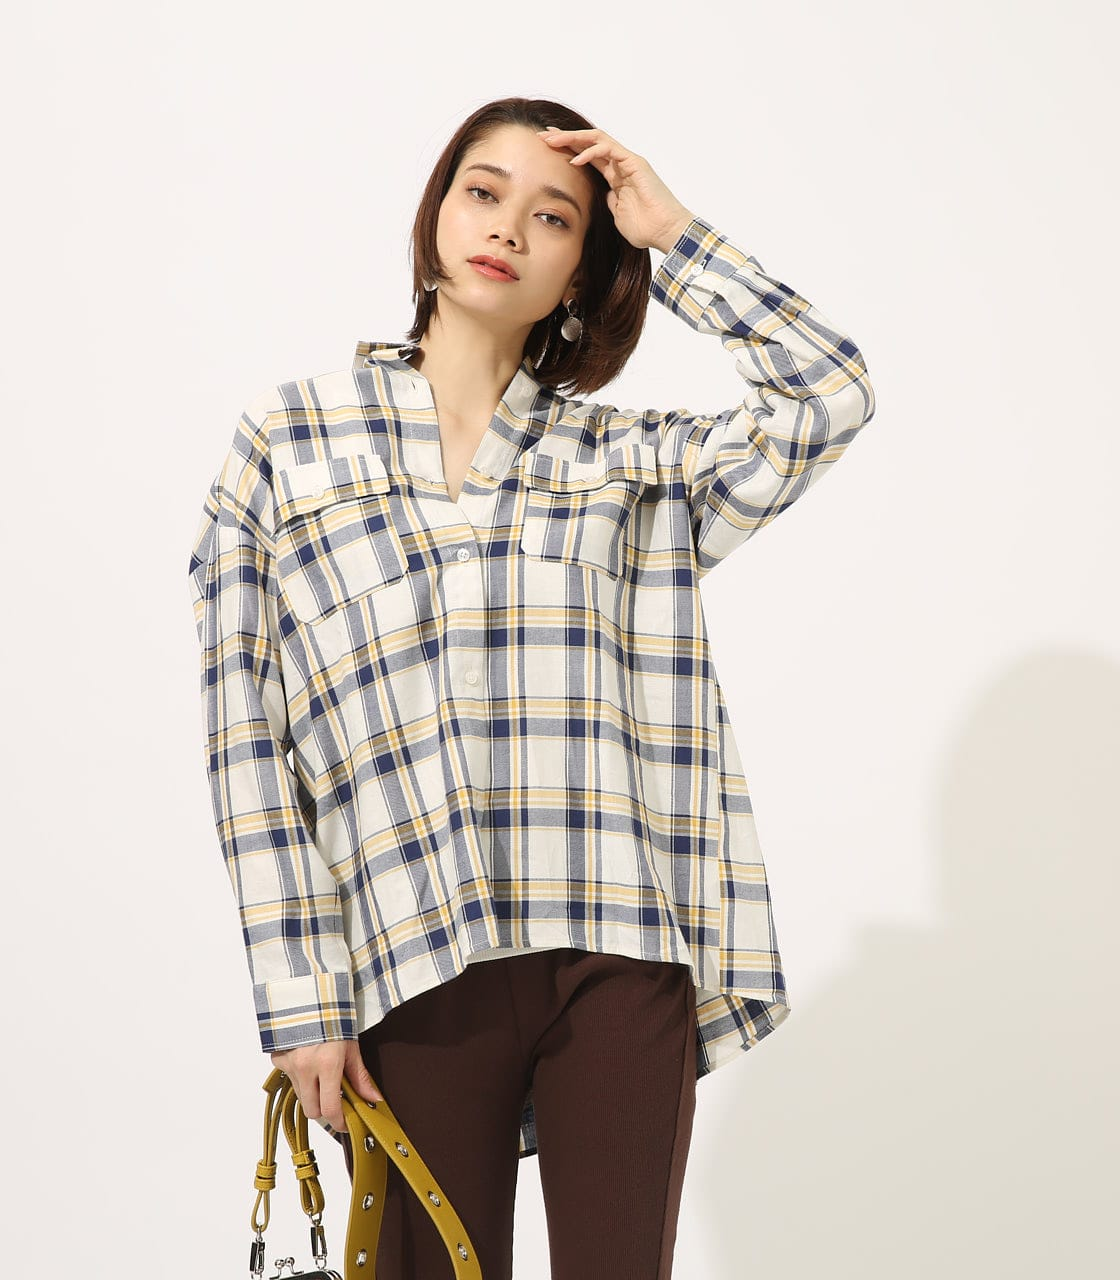 【AZUL BY MOUSSY】MADRAS CHECK SHIRT【MOOK50掲載 90135】 詳細画像 柄WHT 1